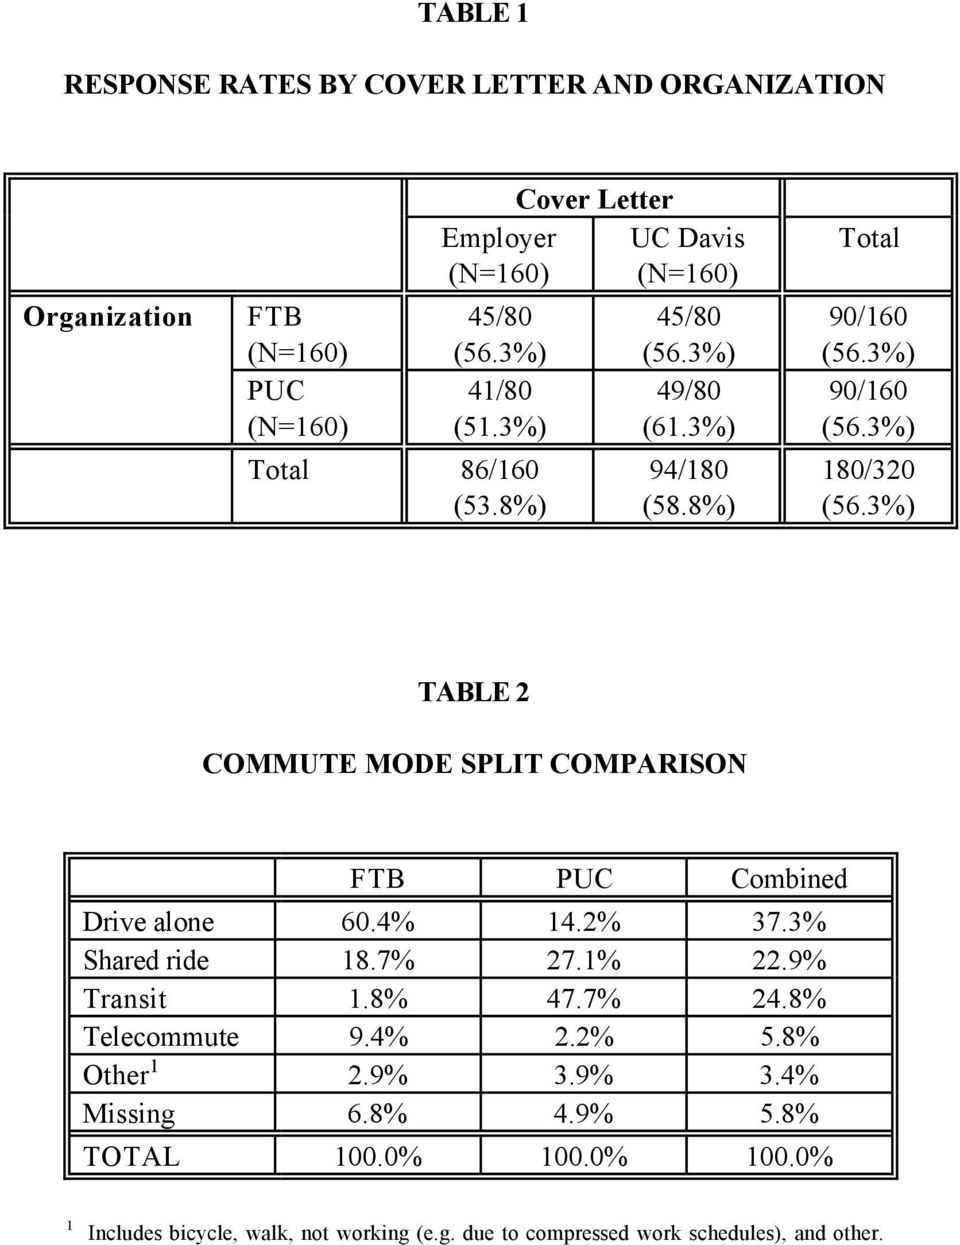 3%) TABLE 2 COMMUTE MODE SPLIT COMPARISON FTB PUC Combined Drive alone 60.4% 14.2% 37.3% Shared ride 18.7% 27.1% 22.9% Transit 1.8% 47.7% 24.